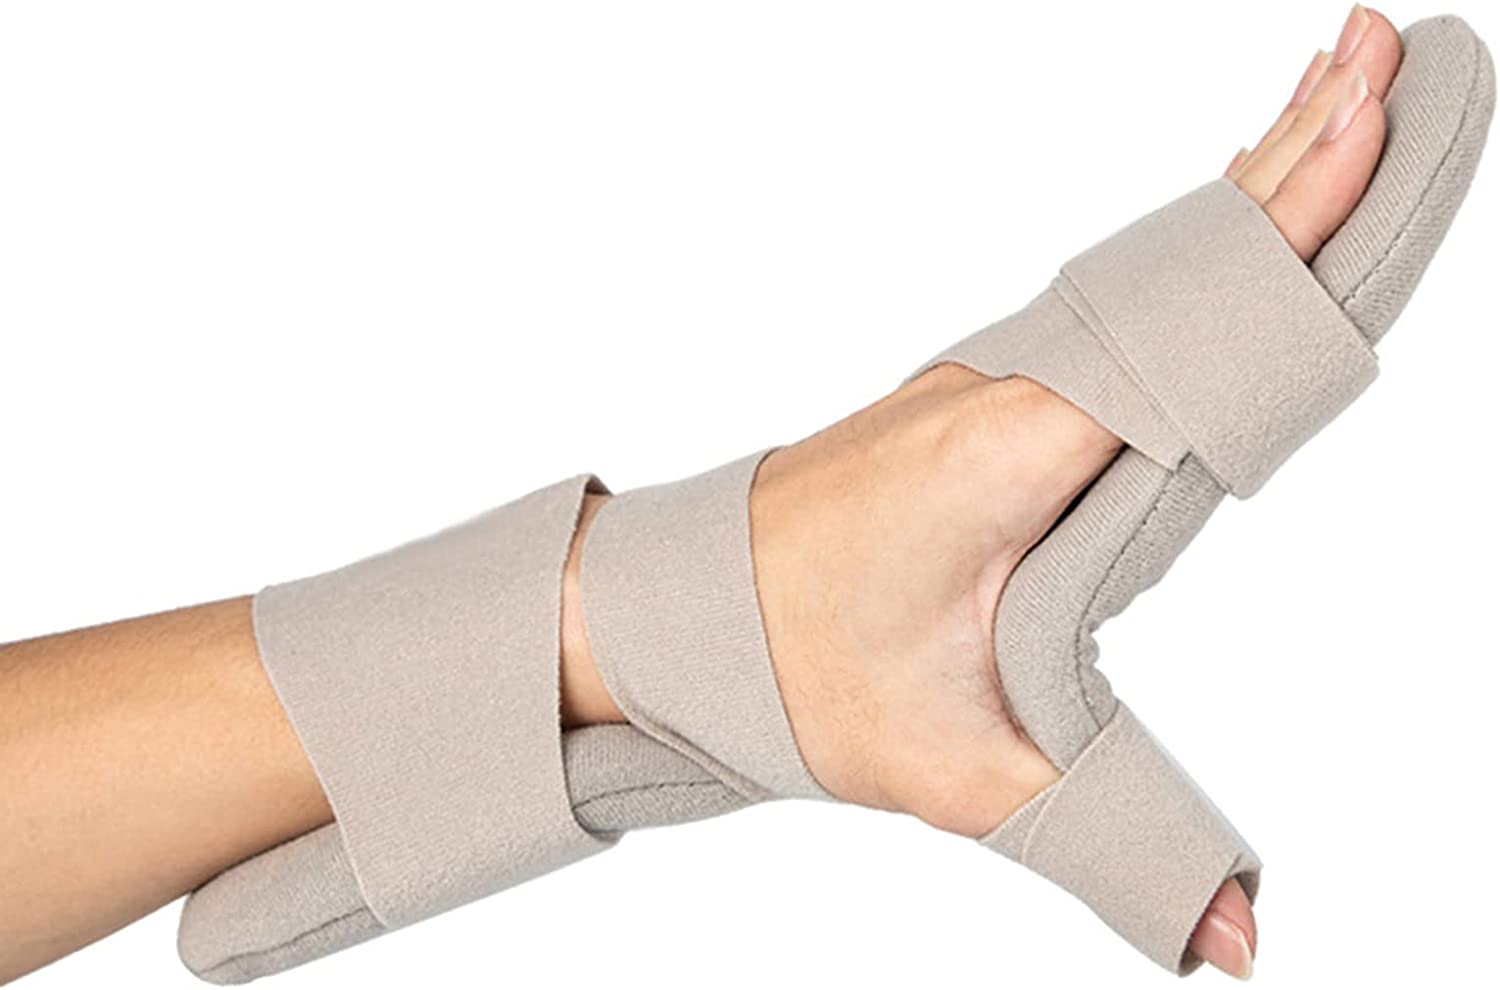 N \ A Soft Resting Hand Op Re Wrist Splint Post Inventory cleanup Luxury selling sale